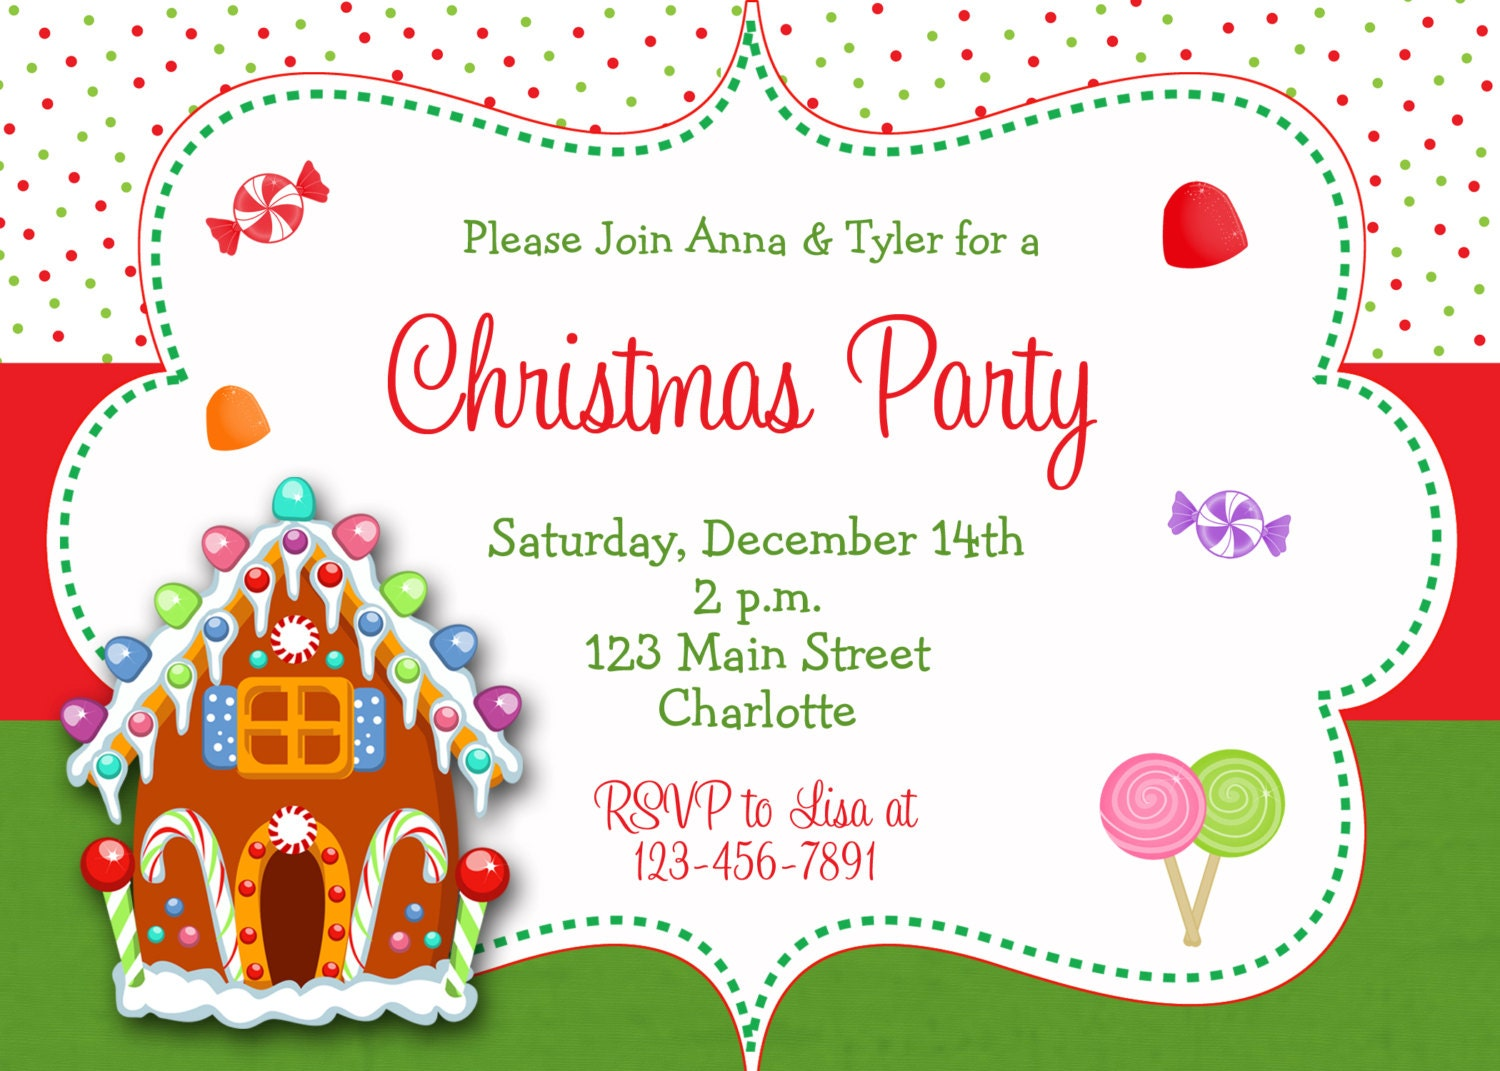 Christmas Party Invitation by stickerchic on Etsy, $9.50 | Holiday ...